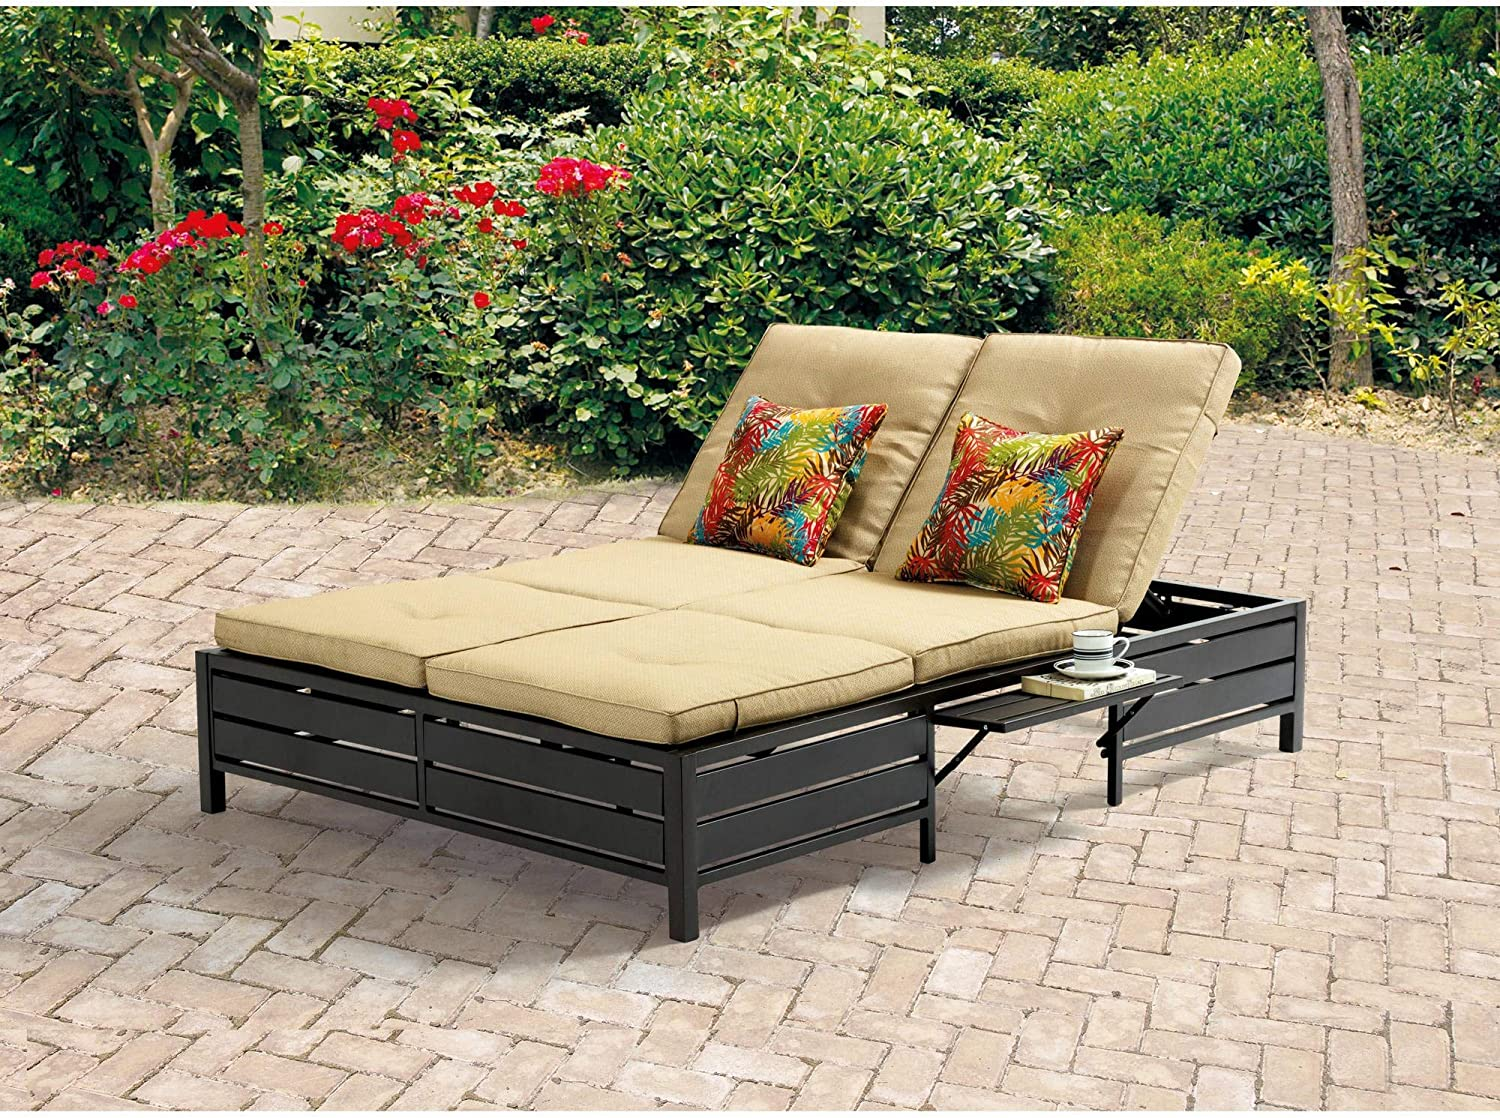 Amazon Com Double Chaise Lounger This Red Stripe Outdoor Chaise Lounge Is Comfortable Sun Patio Furniture Guaranteed Which Can Also Be Used In Your Garden Near Your Pool Or On Your